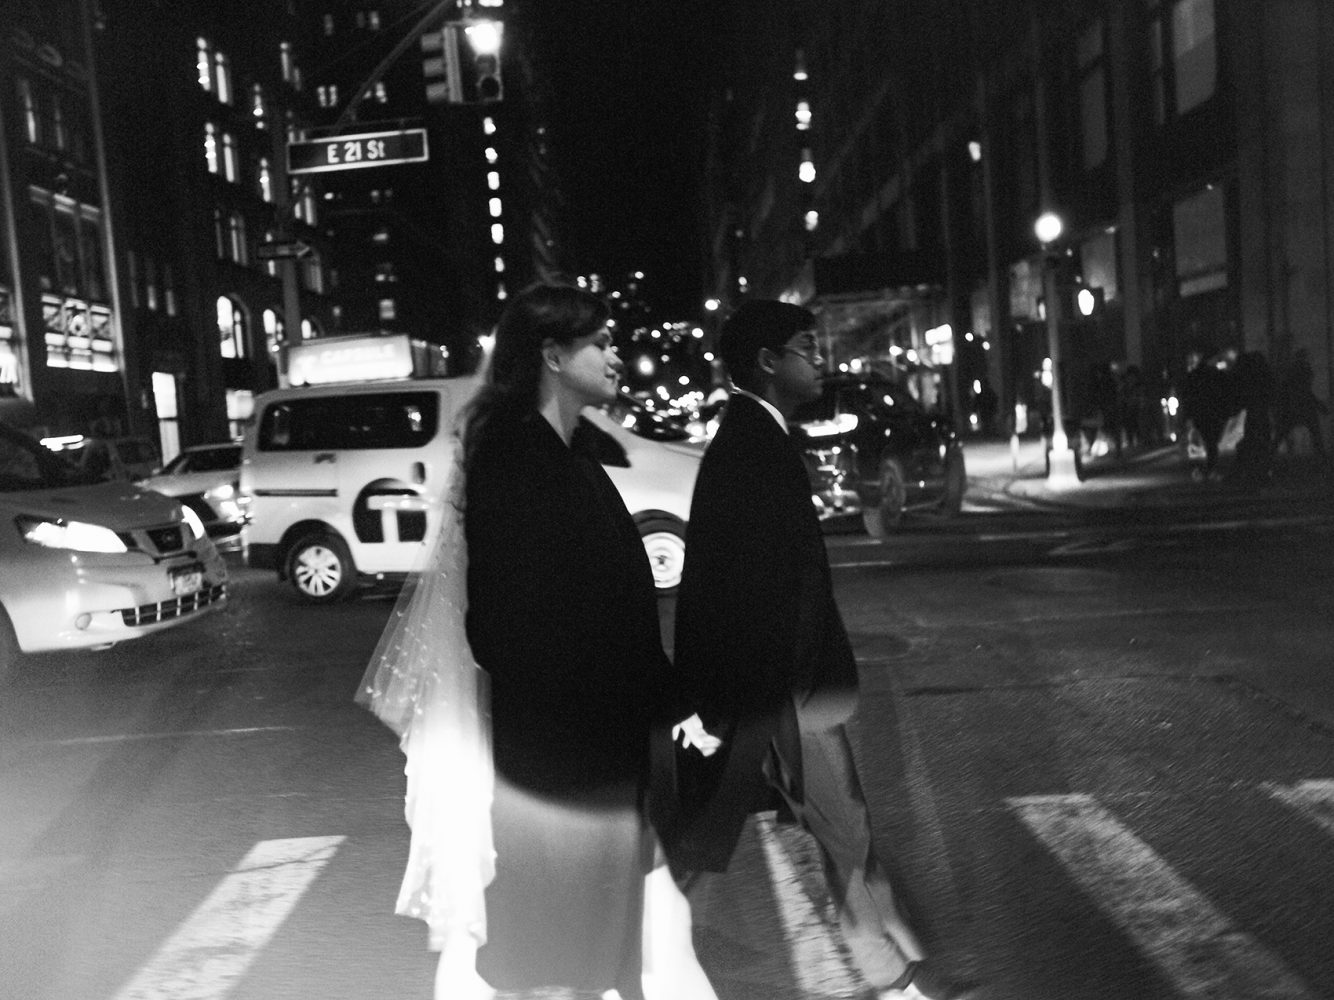 bride and groom crossing street at night NYC ONONA New York wedding photographer film